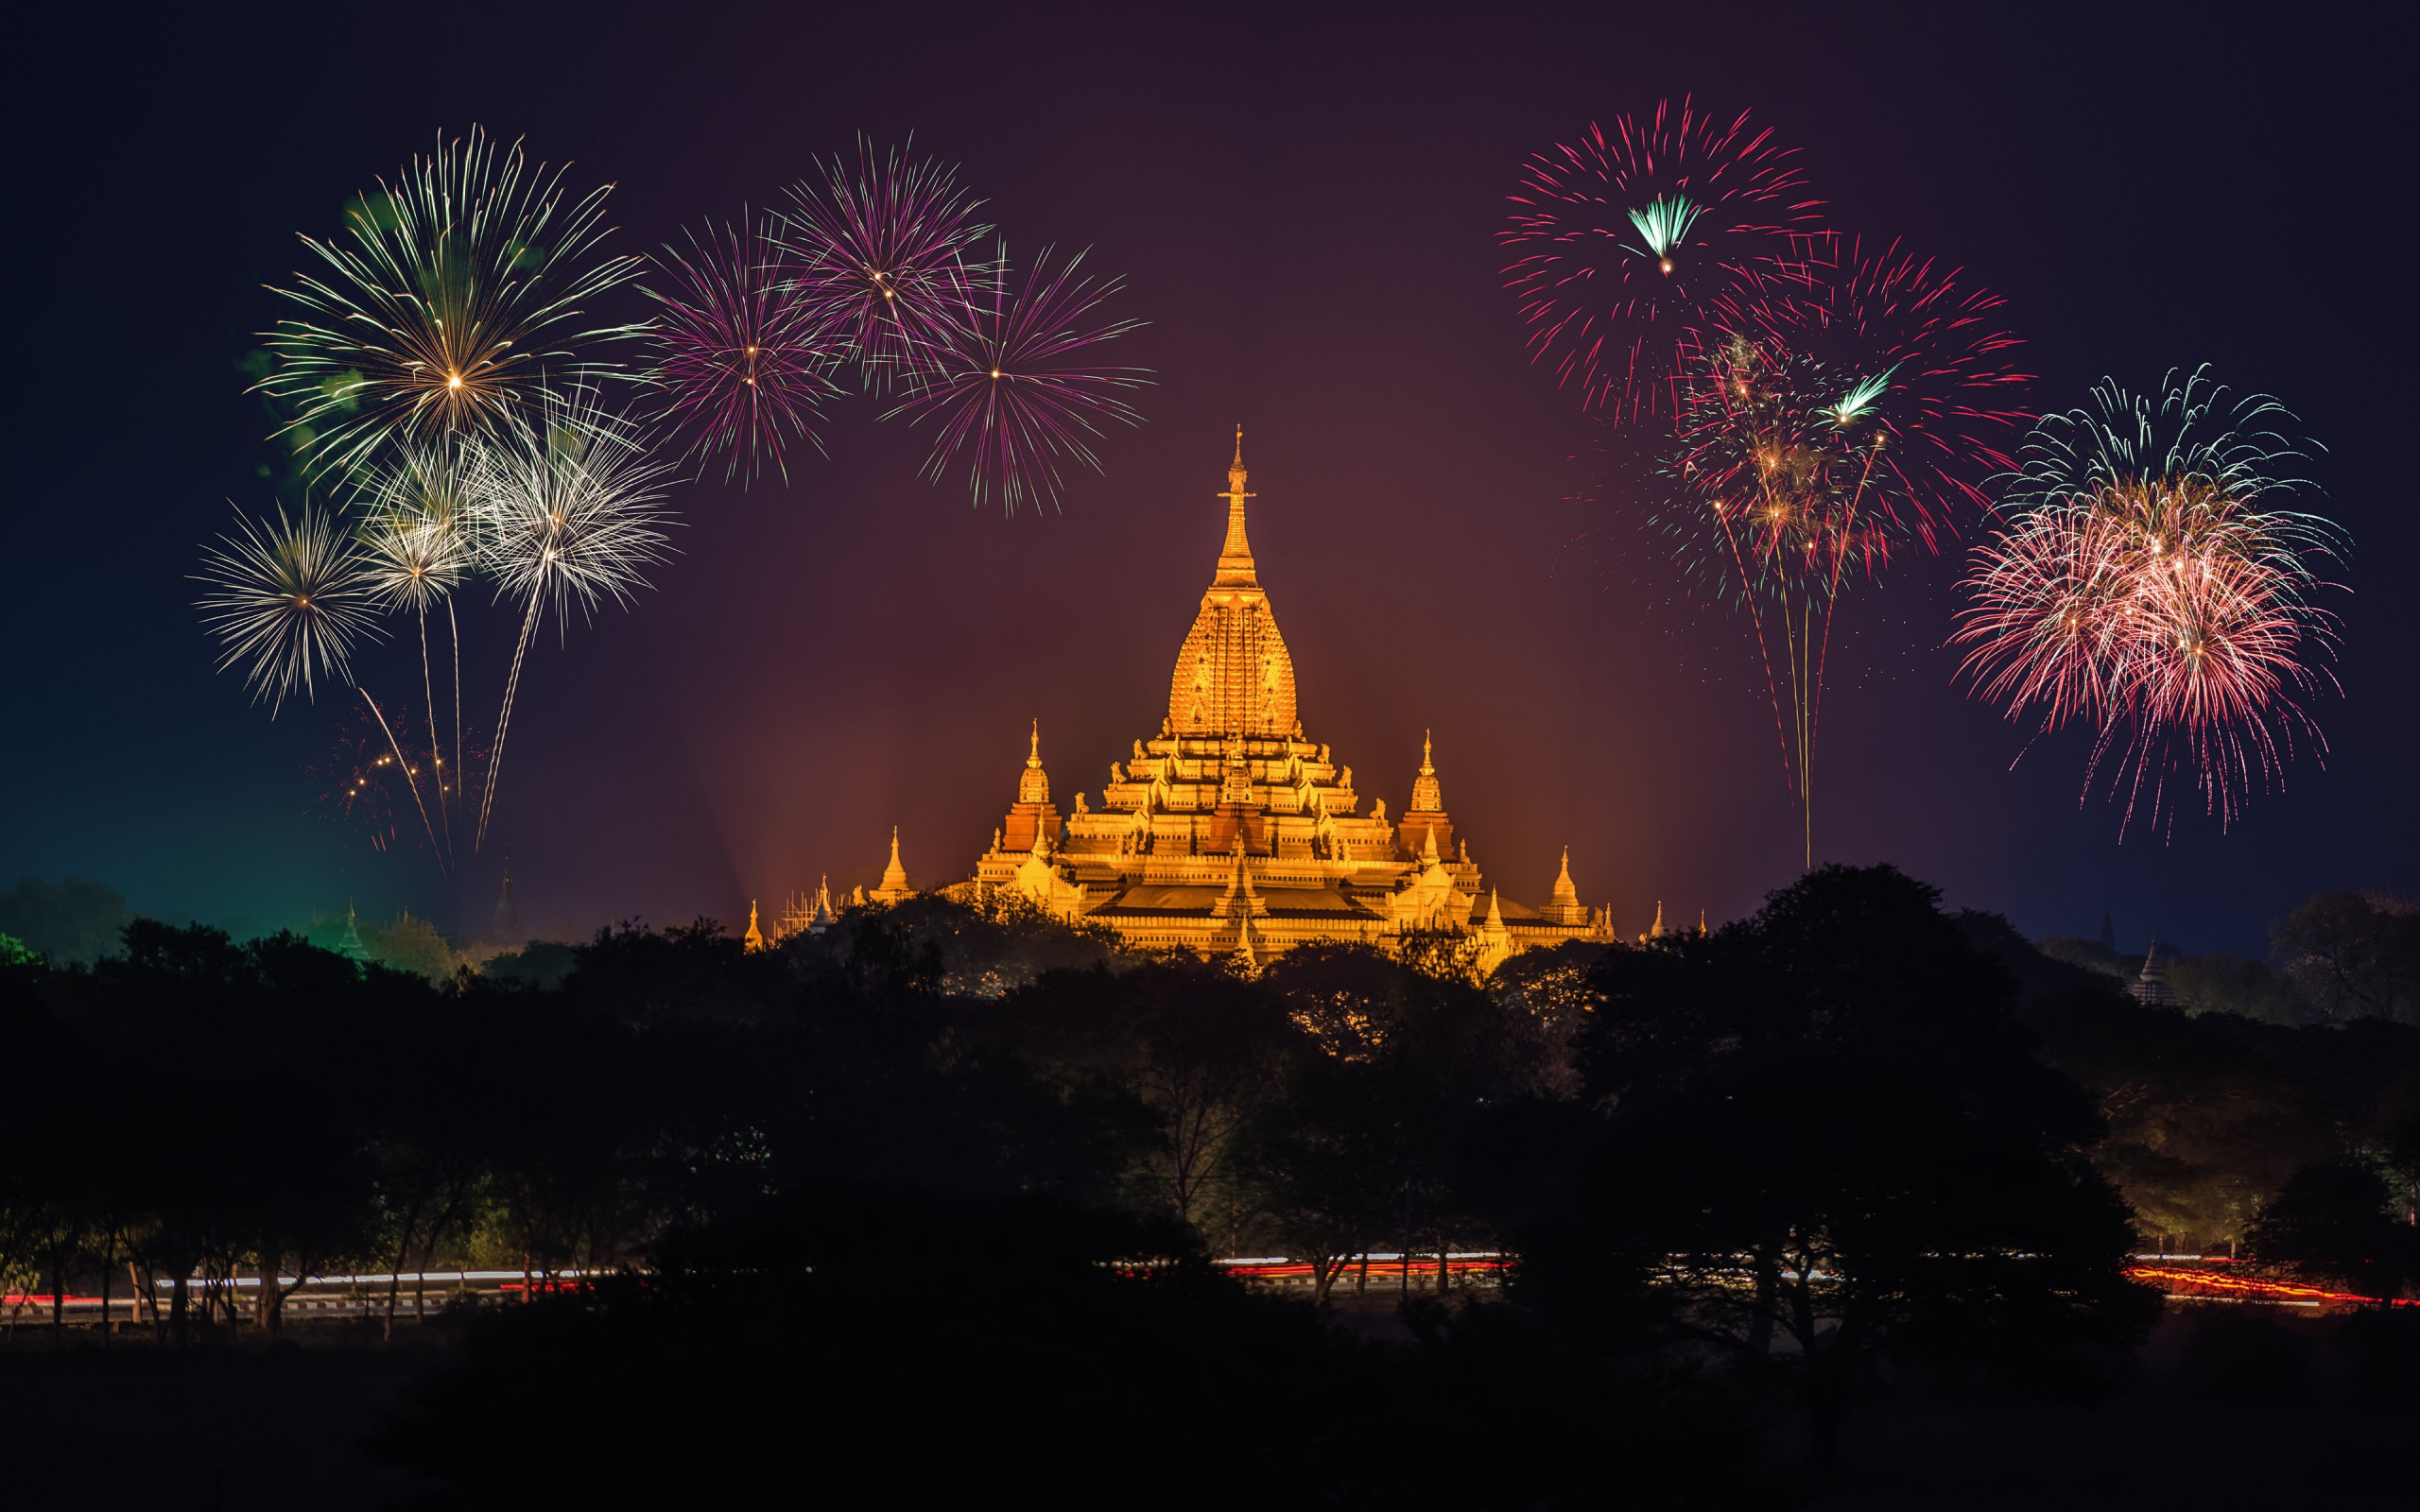 Fireworks above Ananda Phato temple | 2560x1600 wallpaper